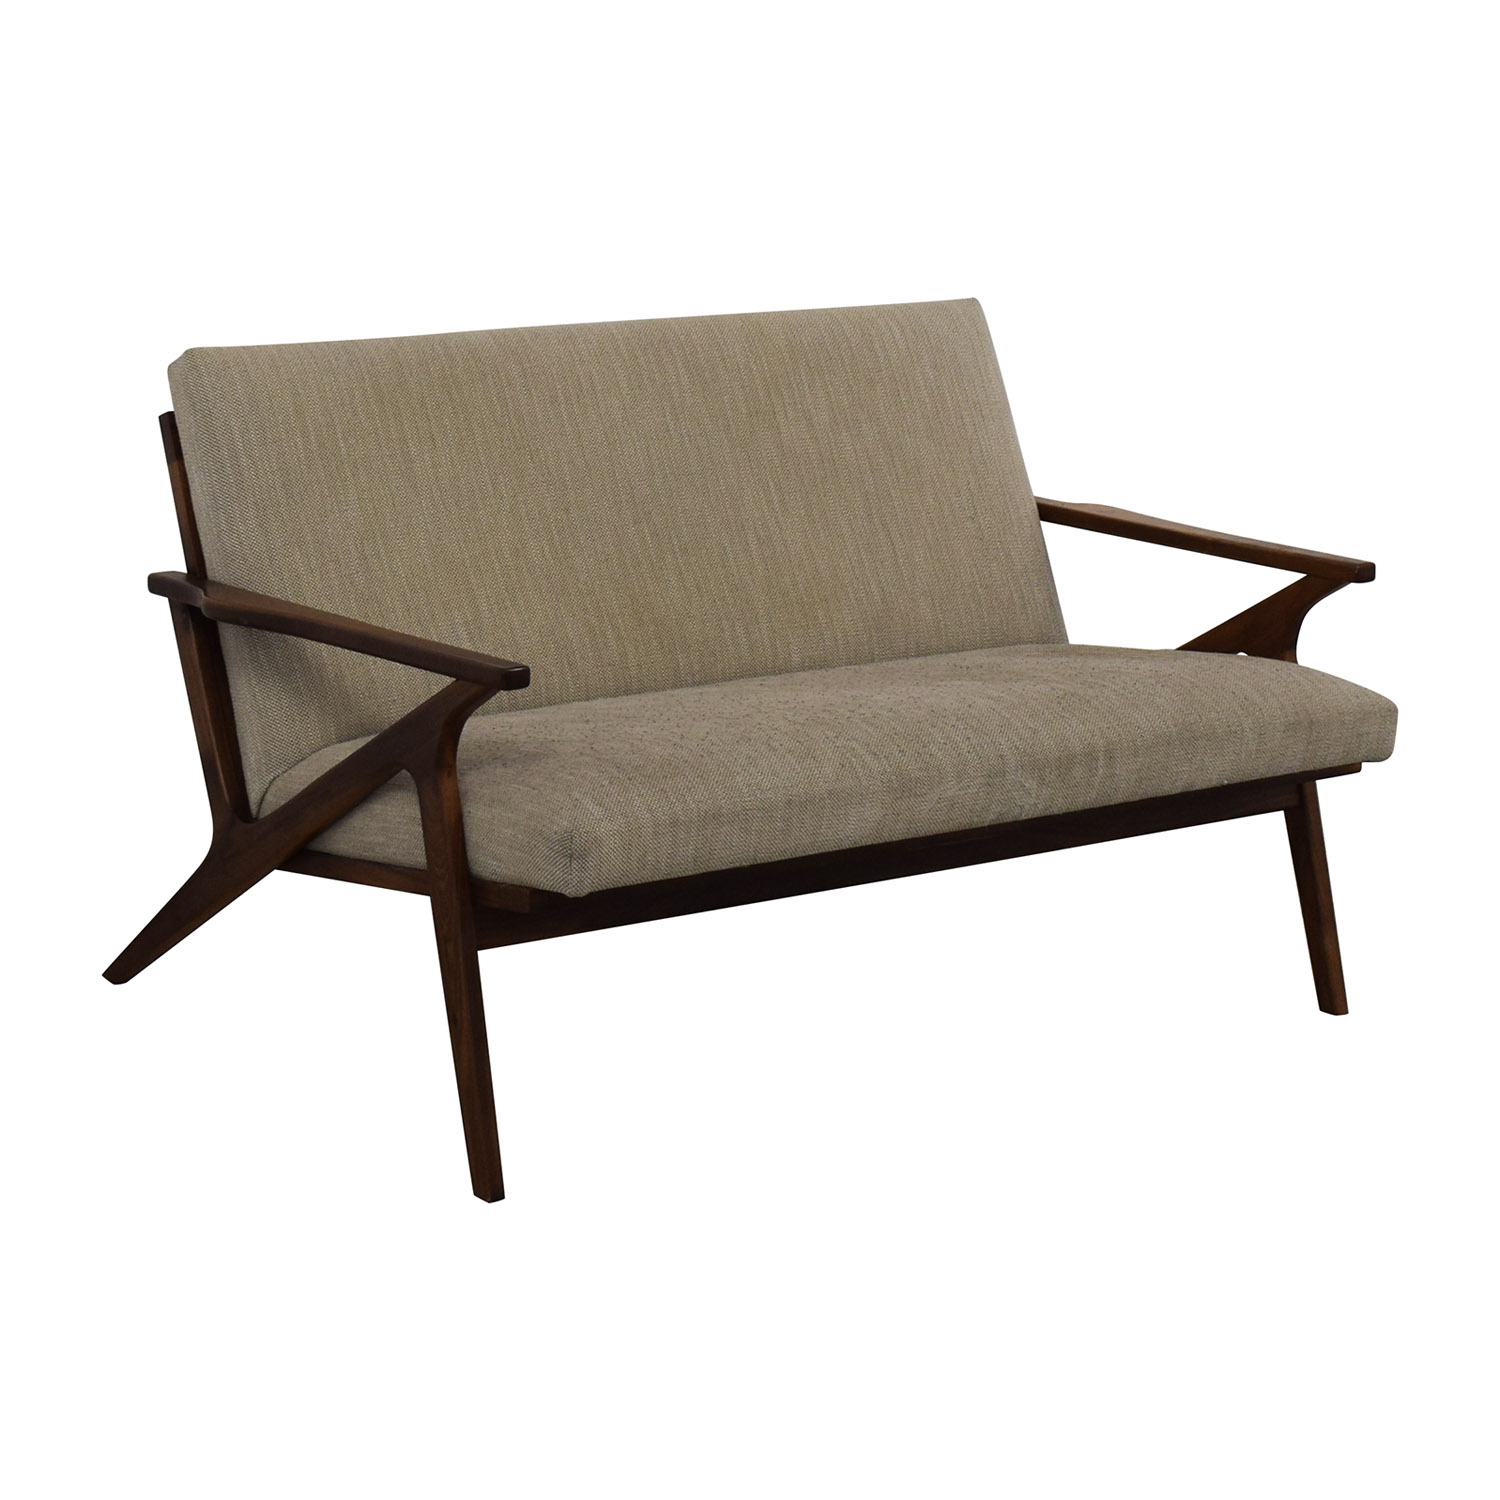 Crate & Barrel Crate & Barrel Cavett Wood Frame Loveseat